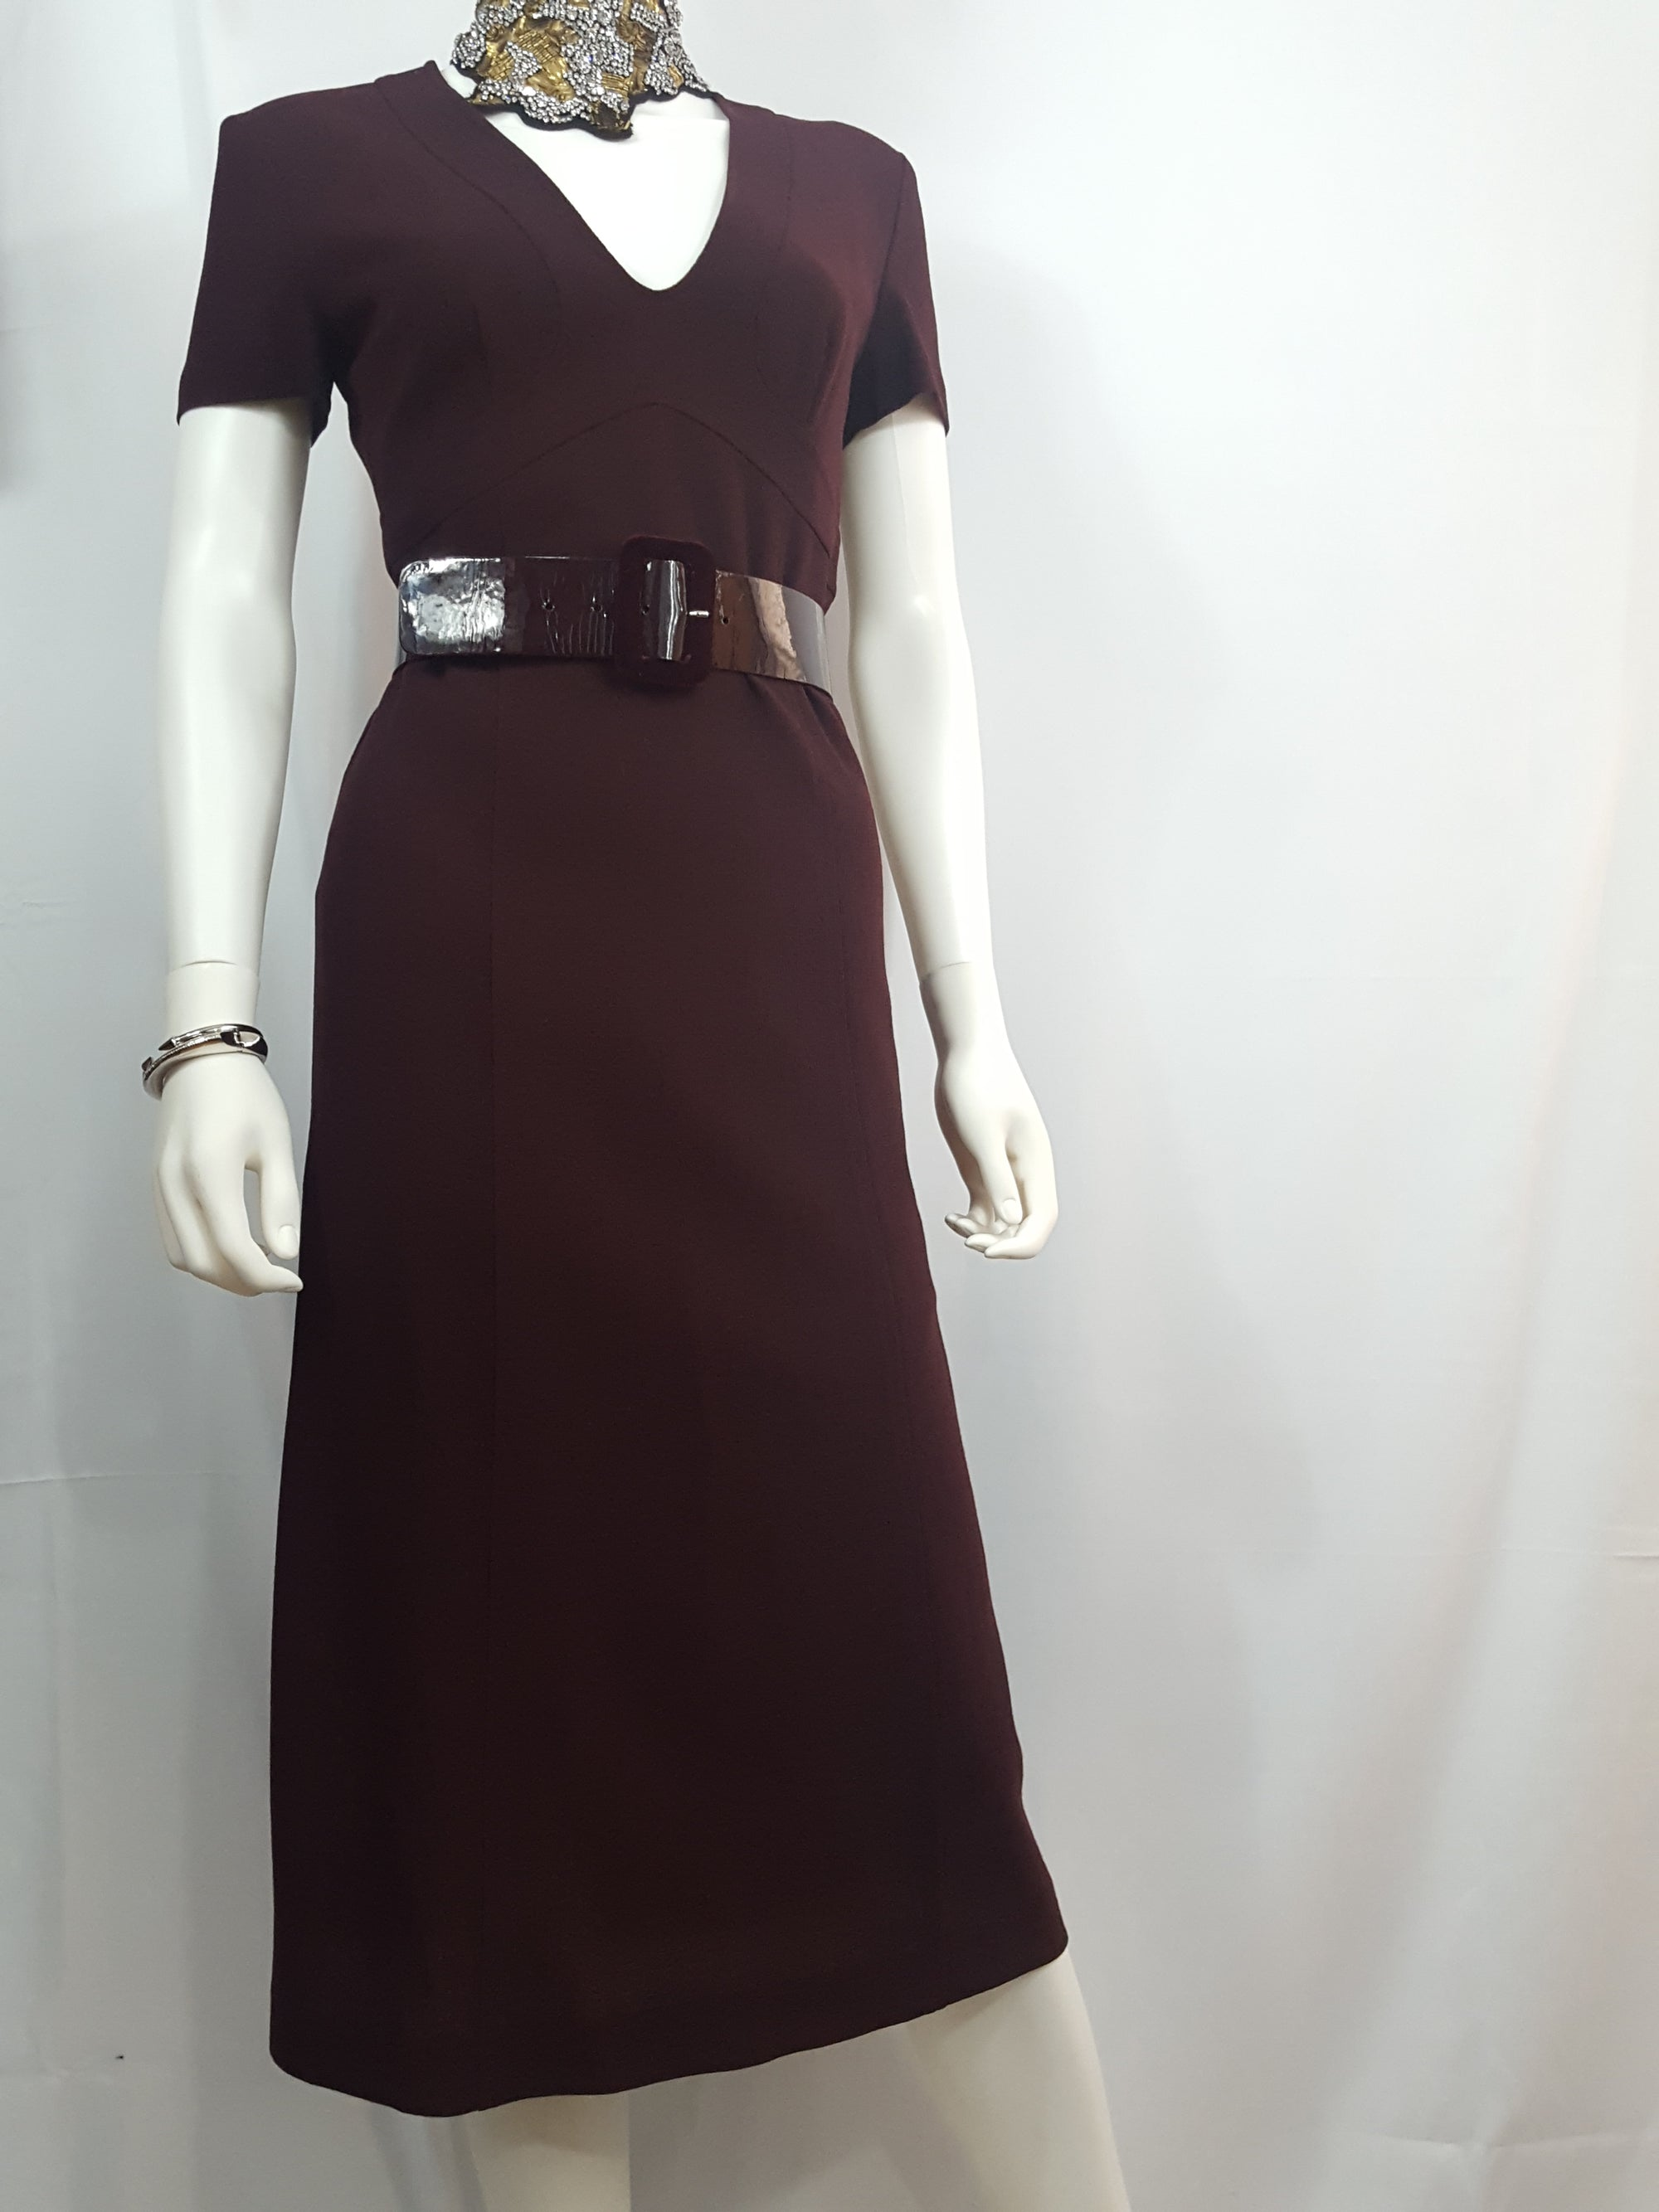 KORS Micheal Kors Wool Shift Dress sz. 4, Dresses, Micheal Kors, [shop_name